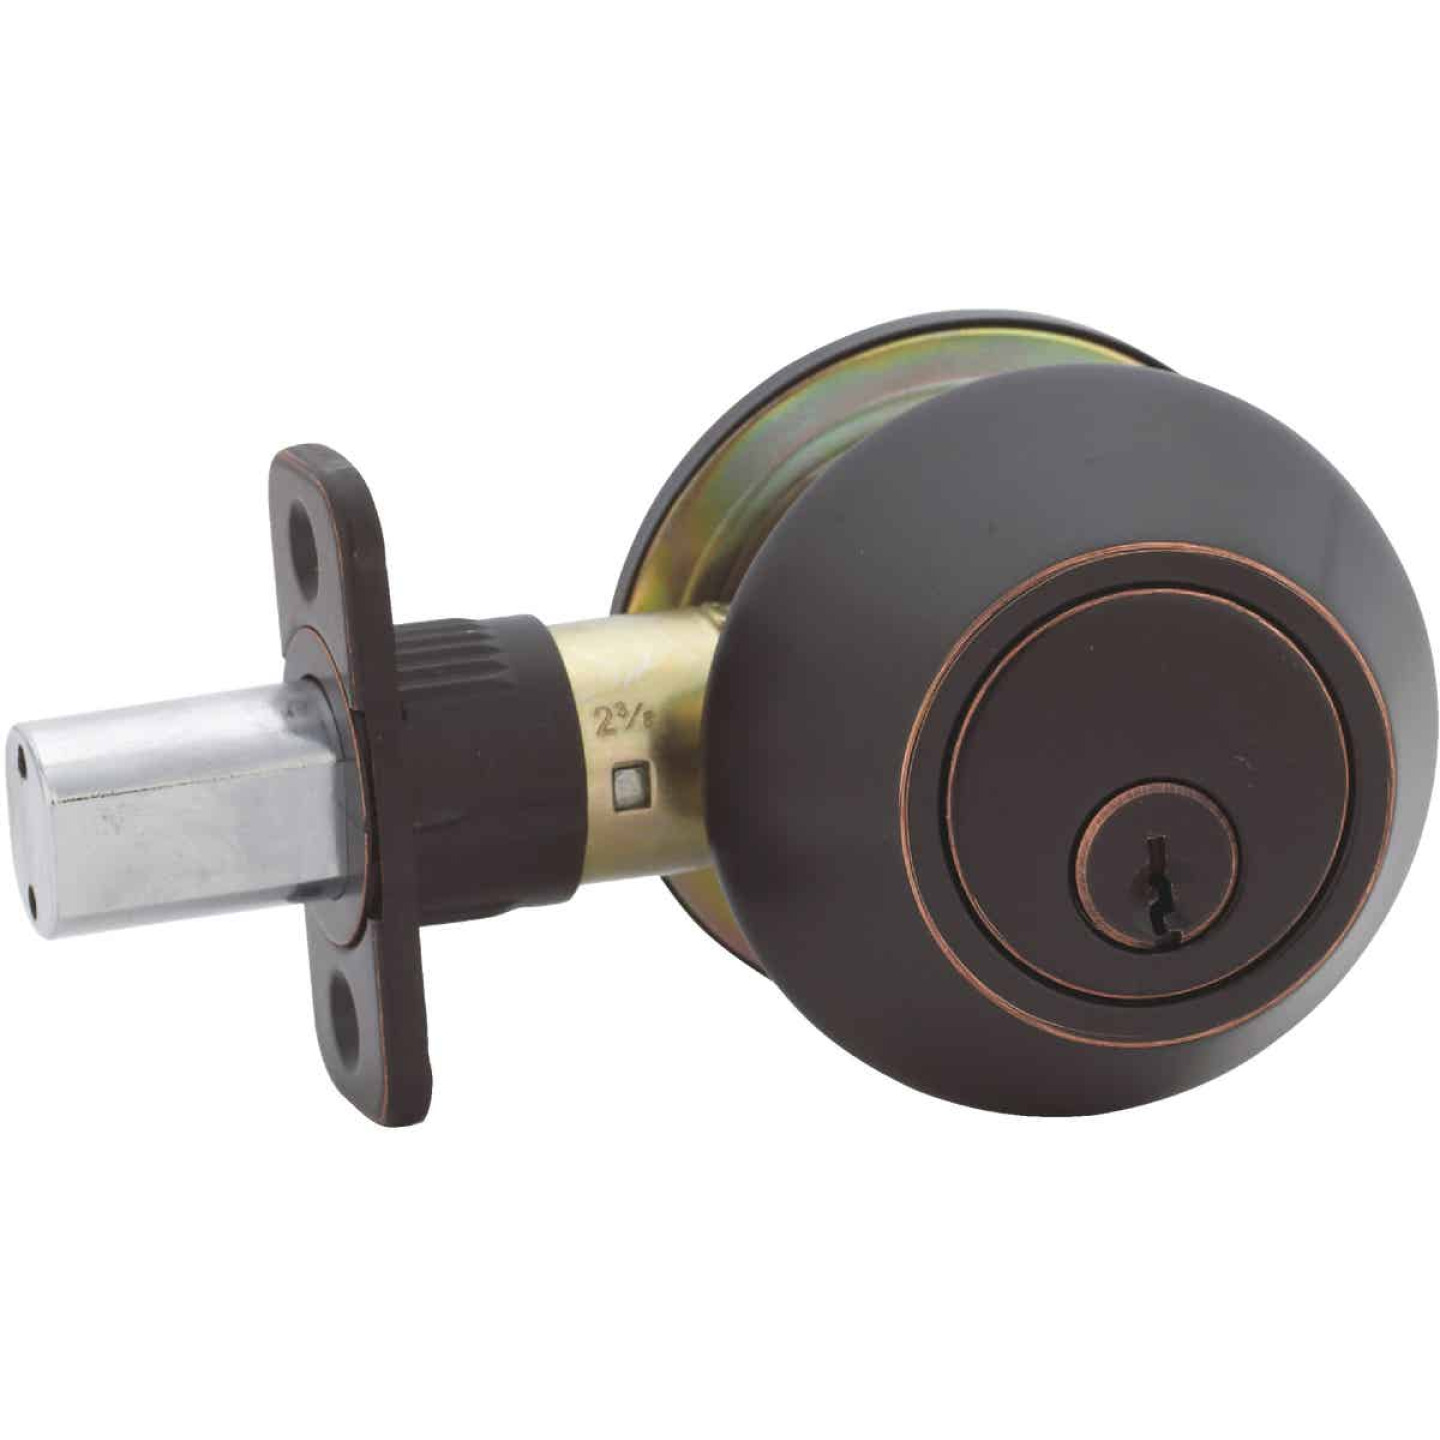 Steel Pro Oil Rubbed Bronze Kwikset Double Cylinder Deadbolt Image 3